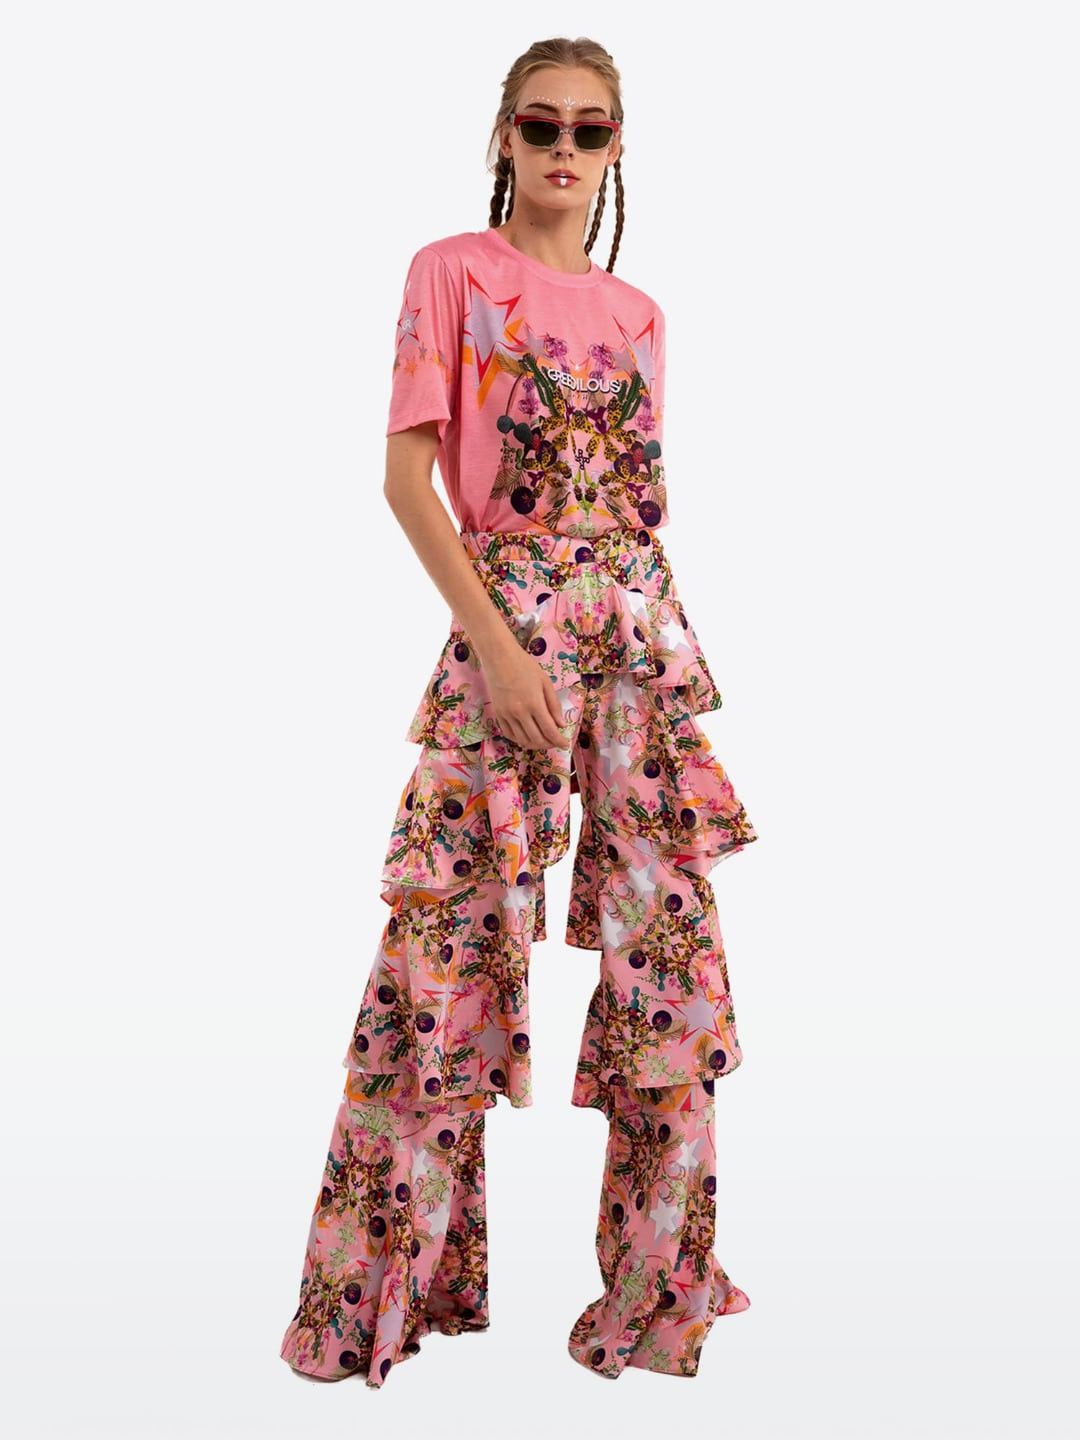 PEACH CHANDELIER RUFFLE PANTS